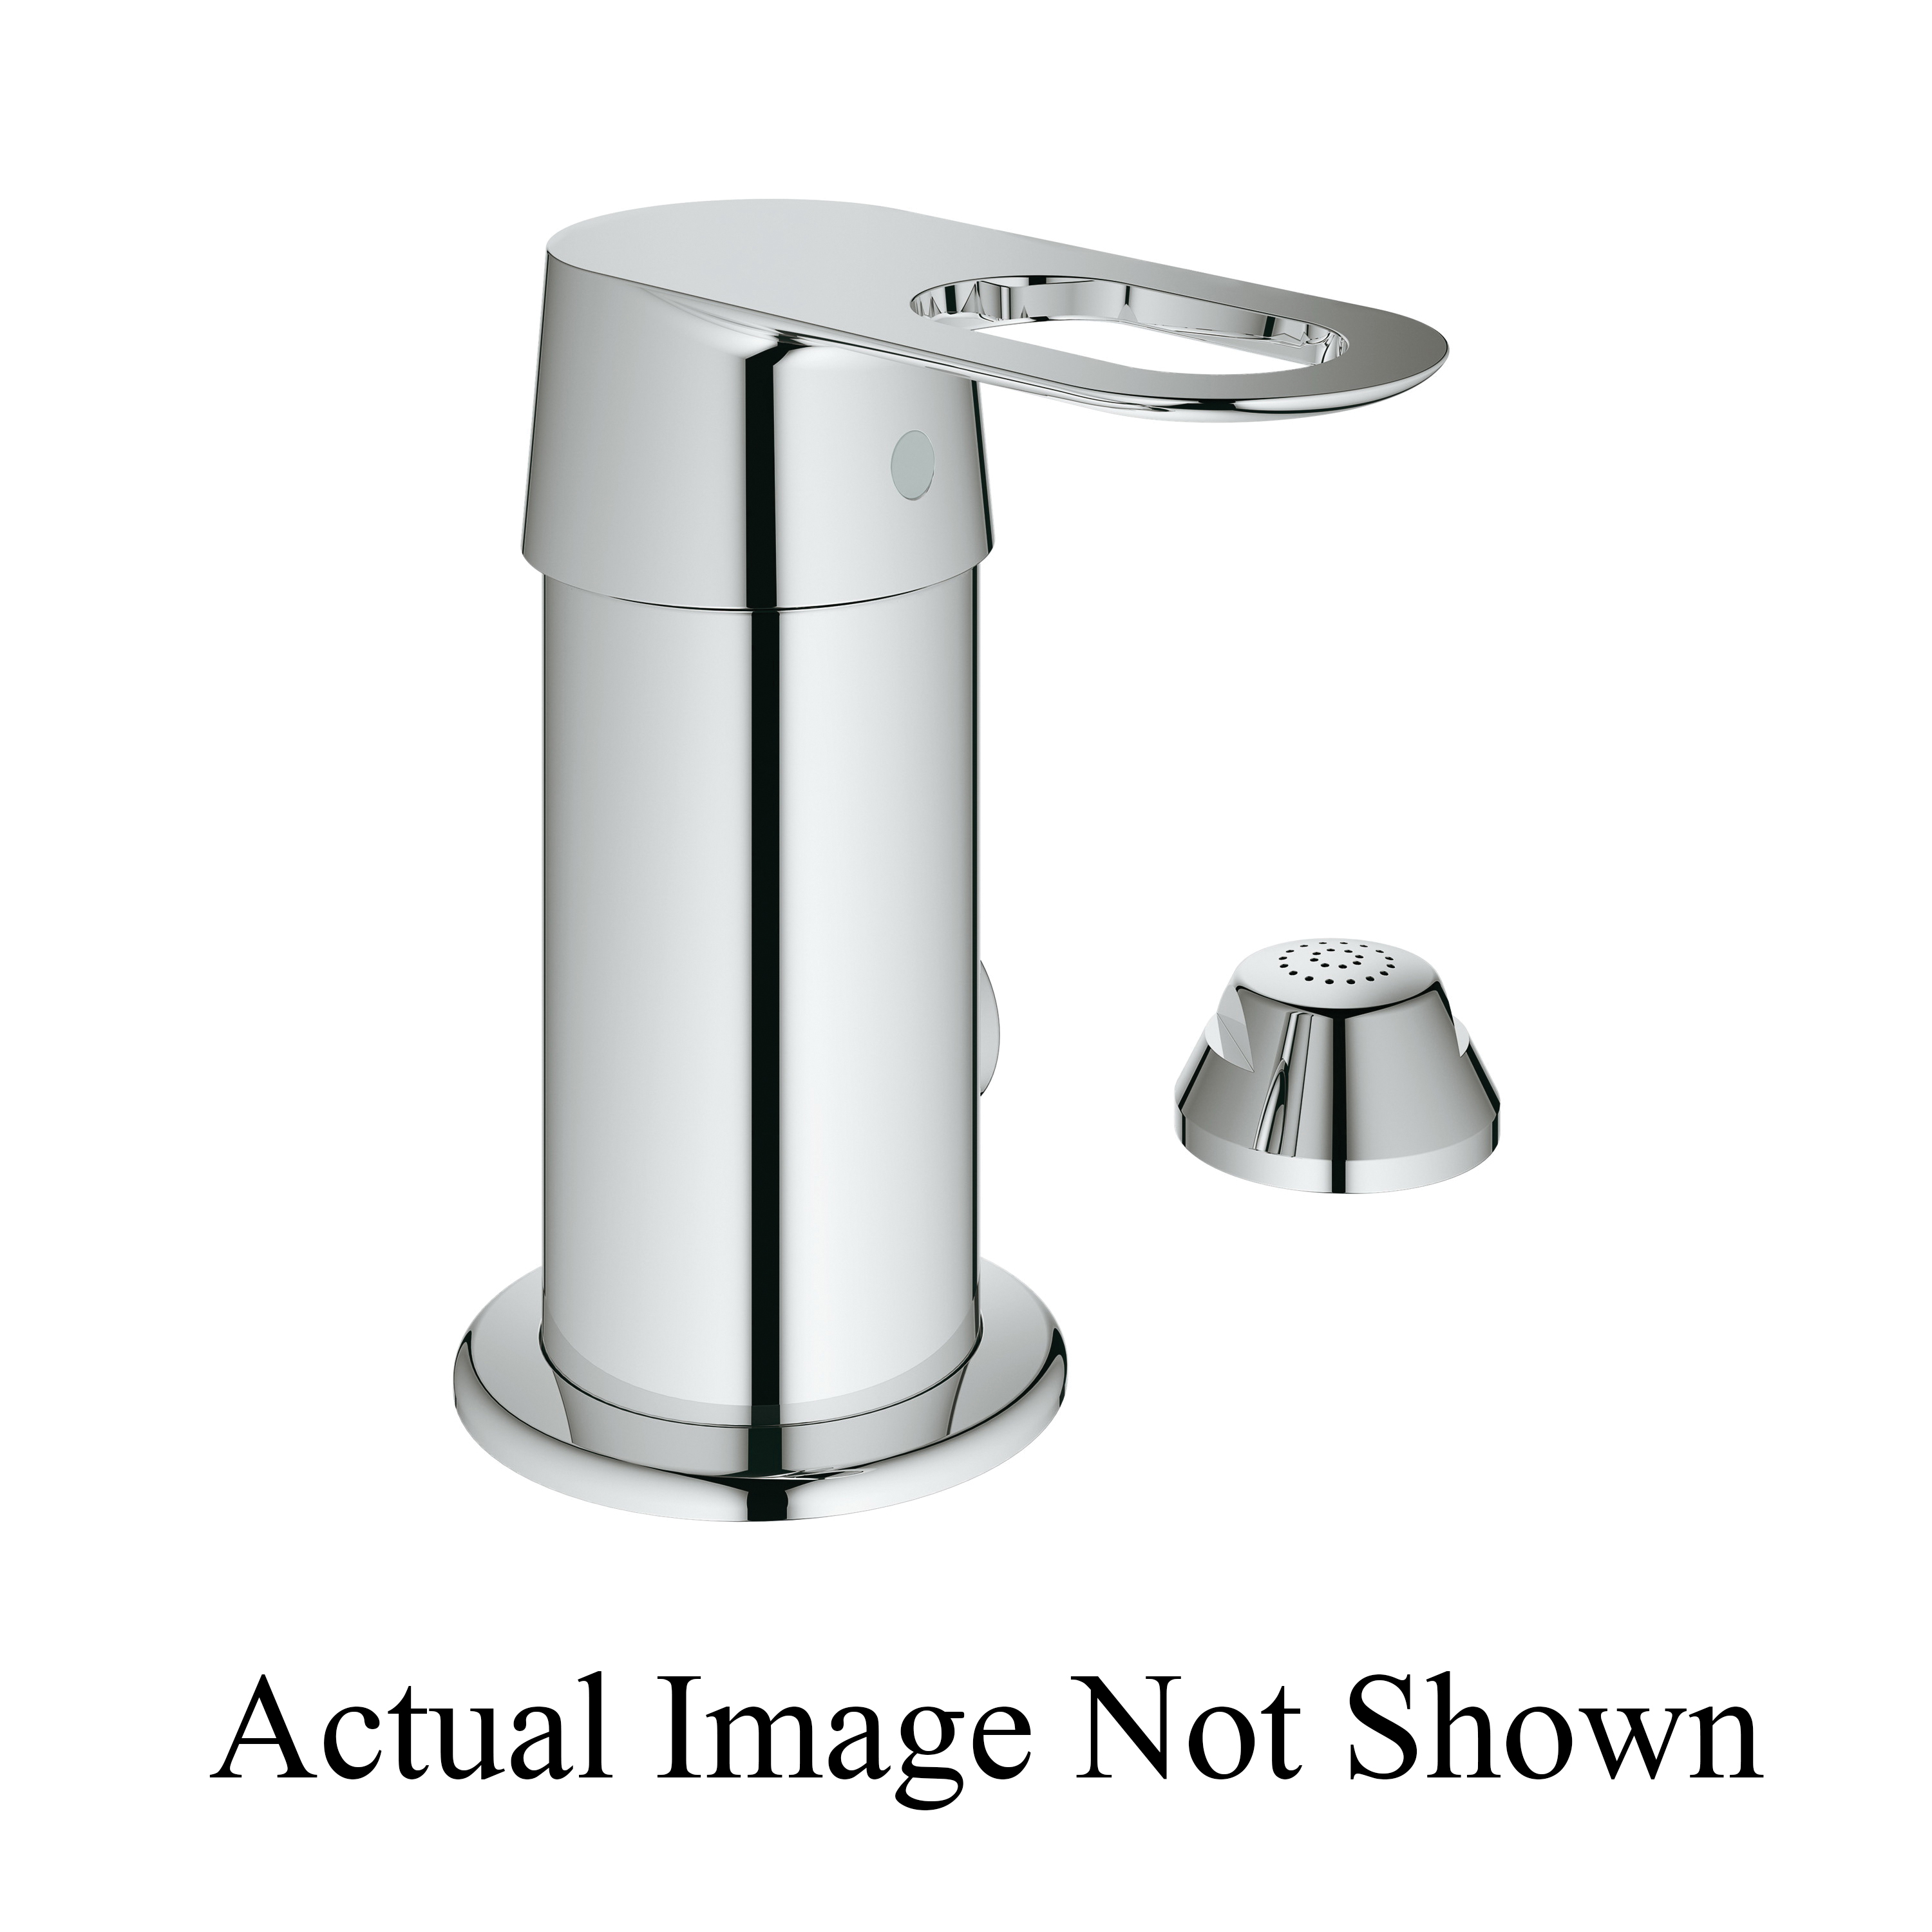 GROHE 47830000 Replacement Trim Handle, For Use With Pressure Balance Valve, StarLight® Chrome, Import